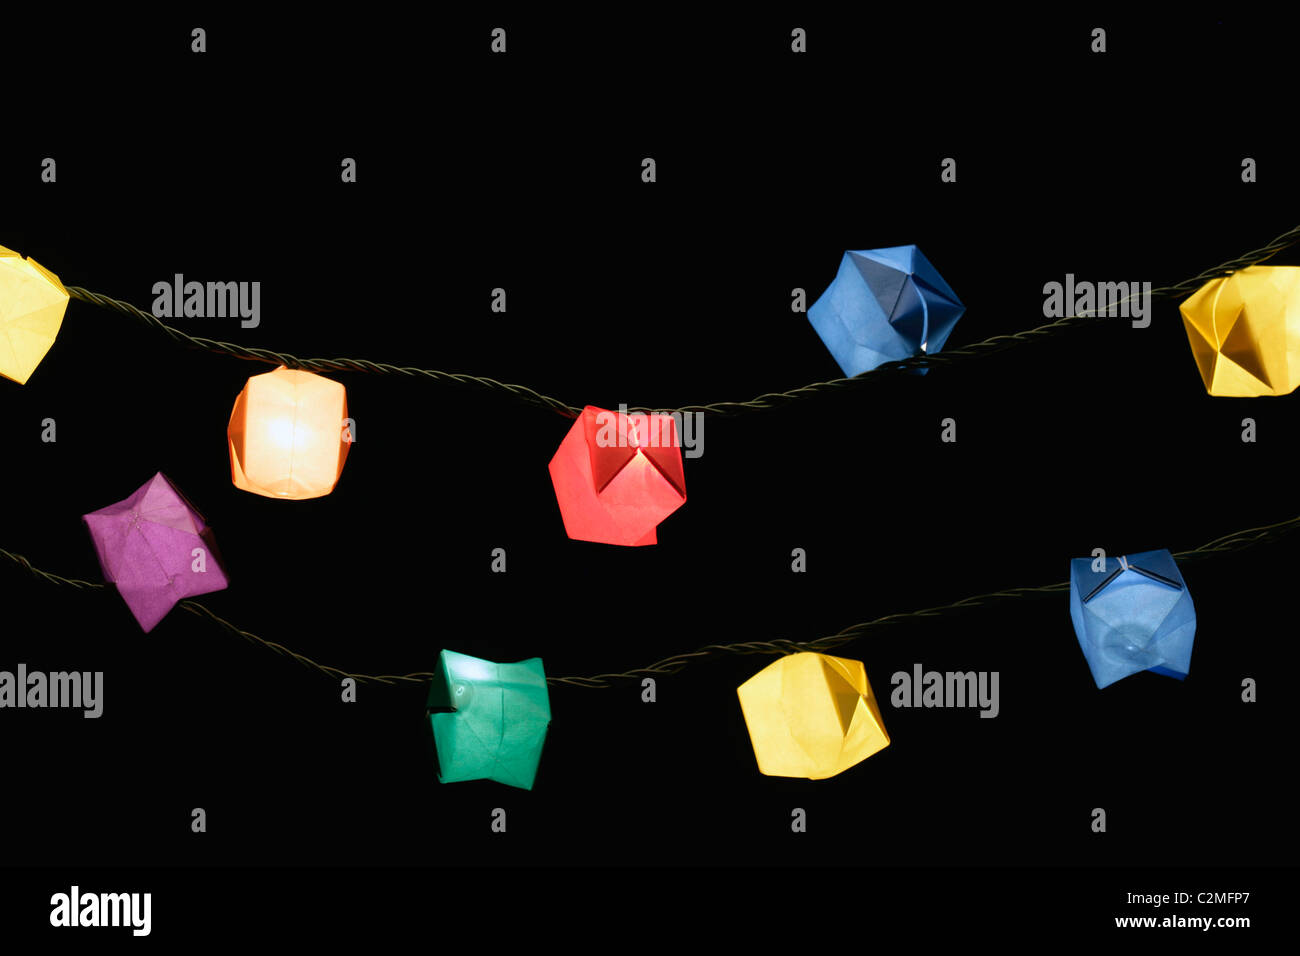 Origami Displayed On A String - Stock Image